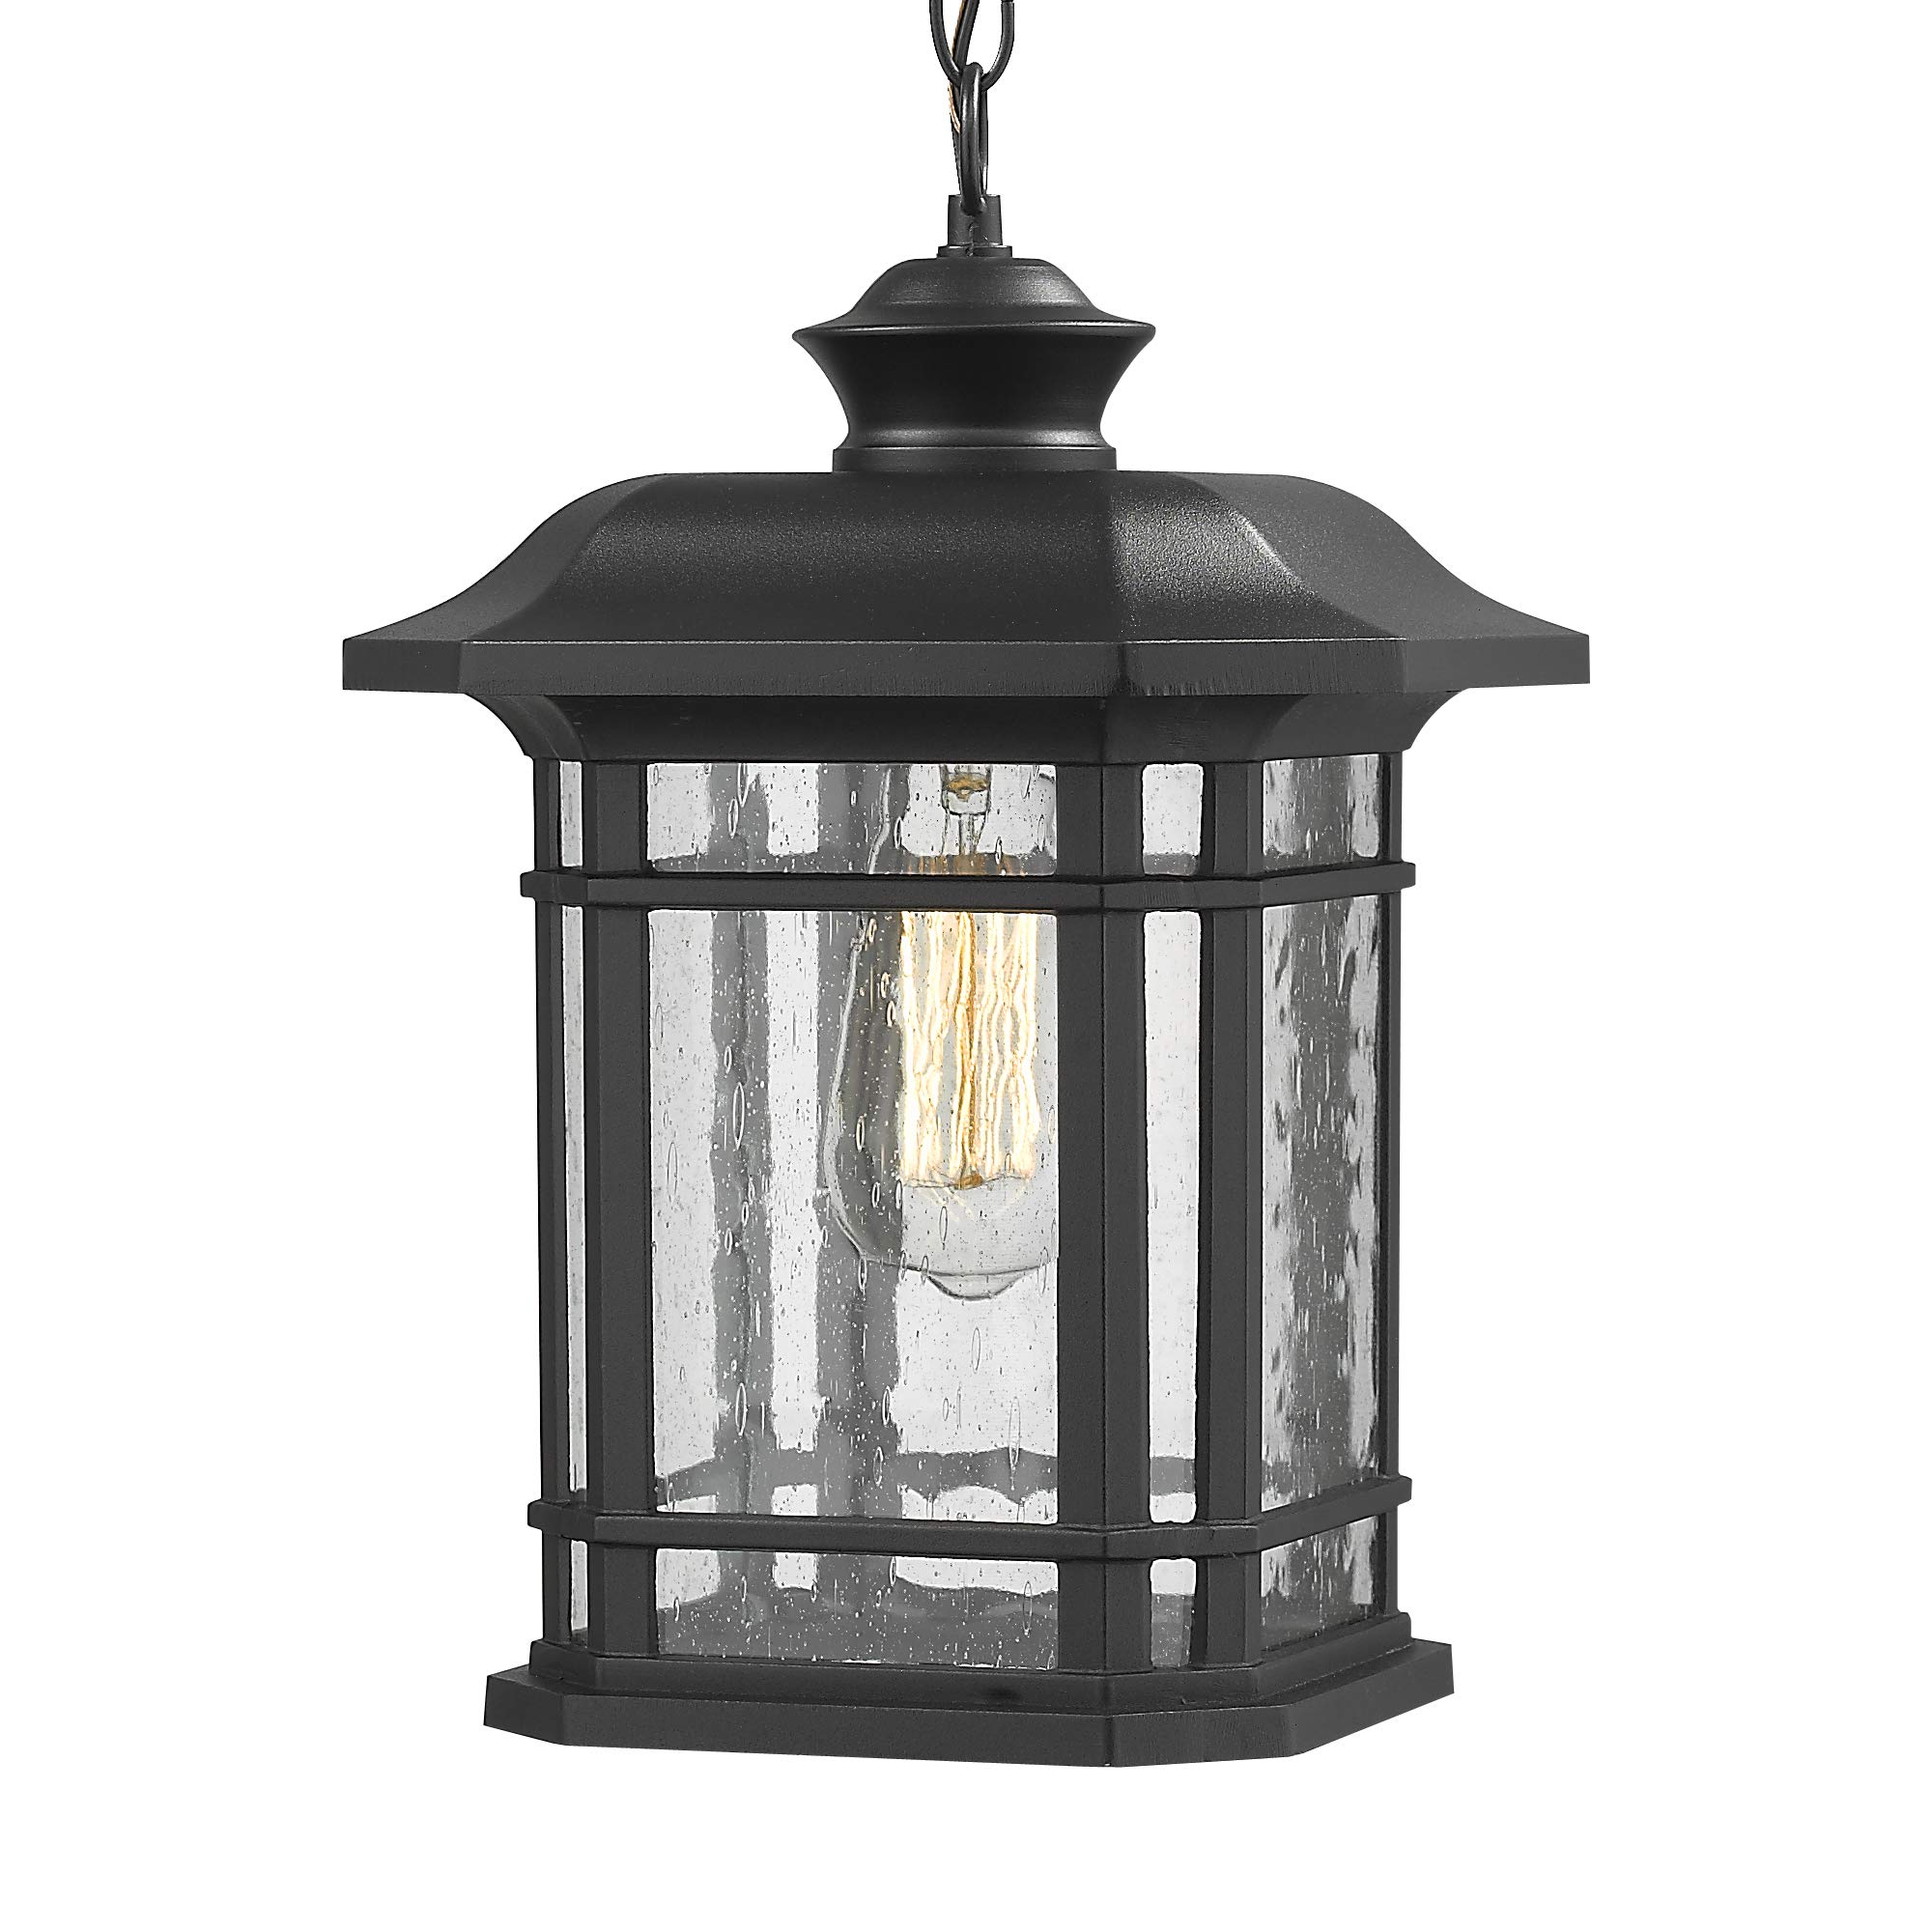 Emliviar Modern Exterior Pendant Light Lantern, 14'' Outdoor Hanging Light in Black Finish with Seeded Glass, A2202110D1